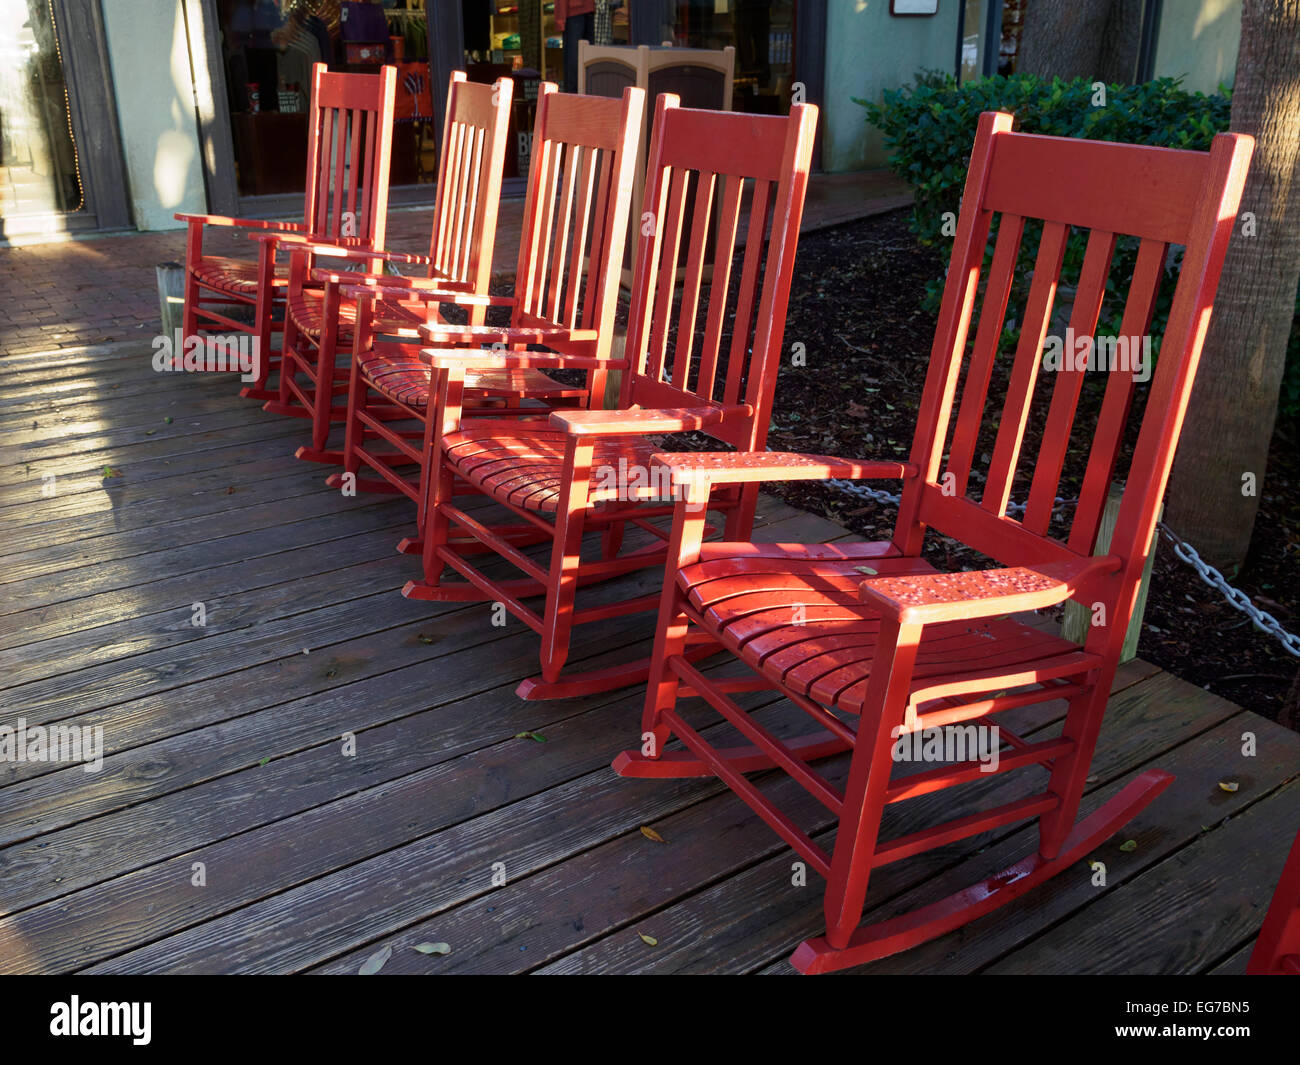 Red Rocking Chairs At Harbour Town, Hilton Head Island, South Carolina